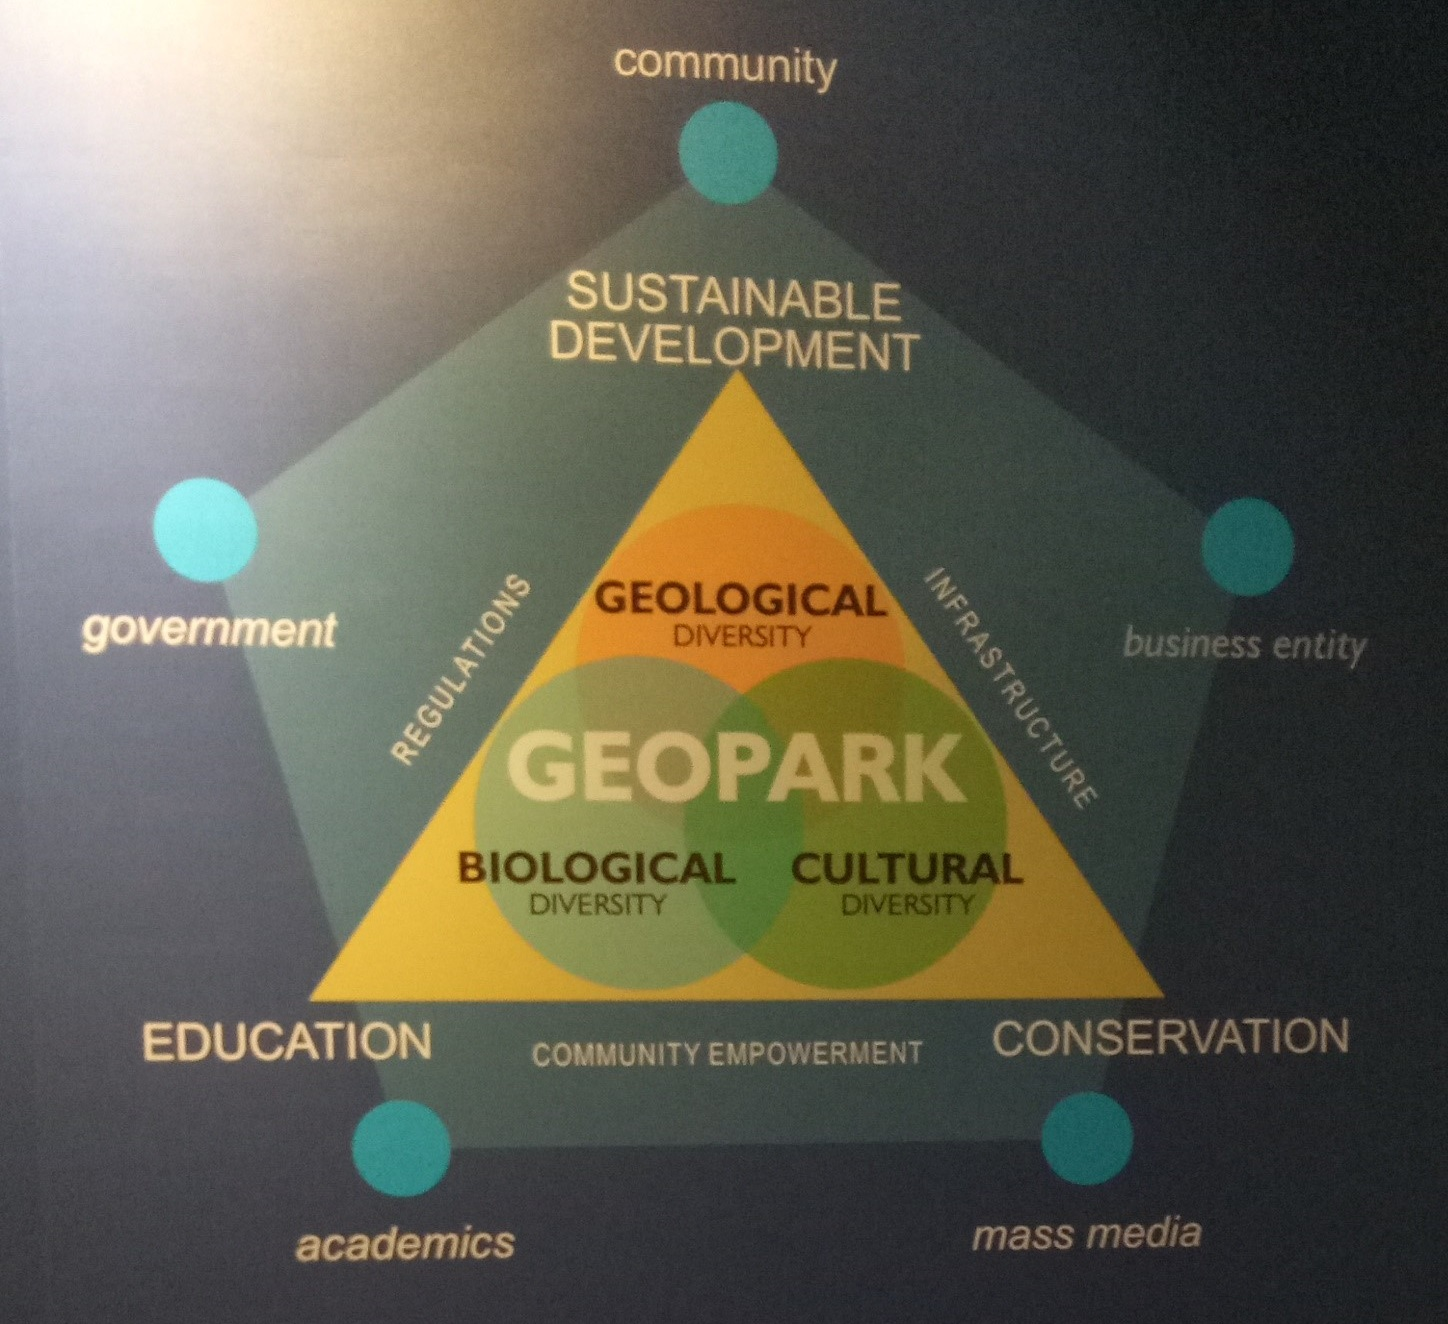 Management of the geopark considers multiple interlocking priorities and stakeholders